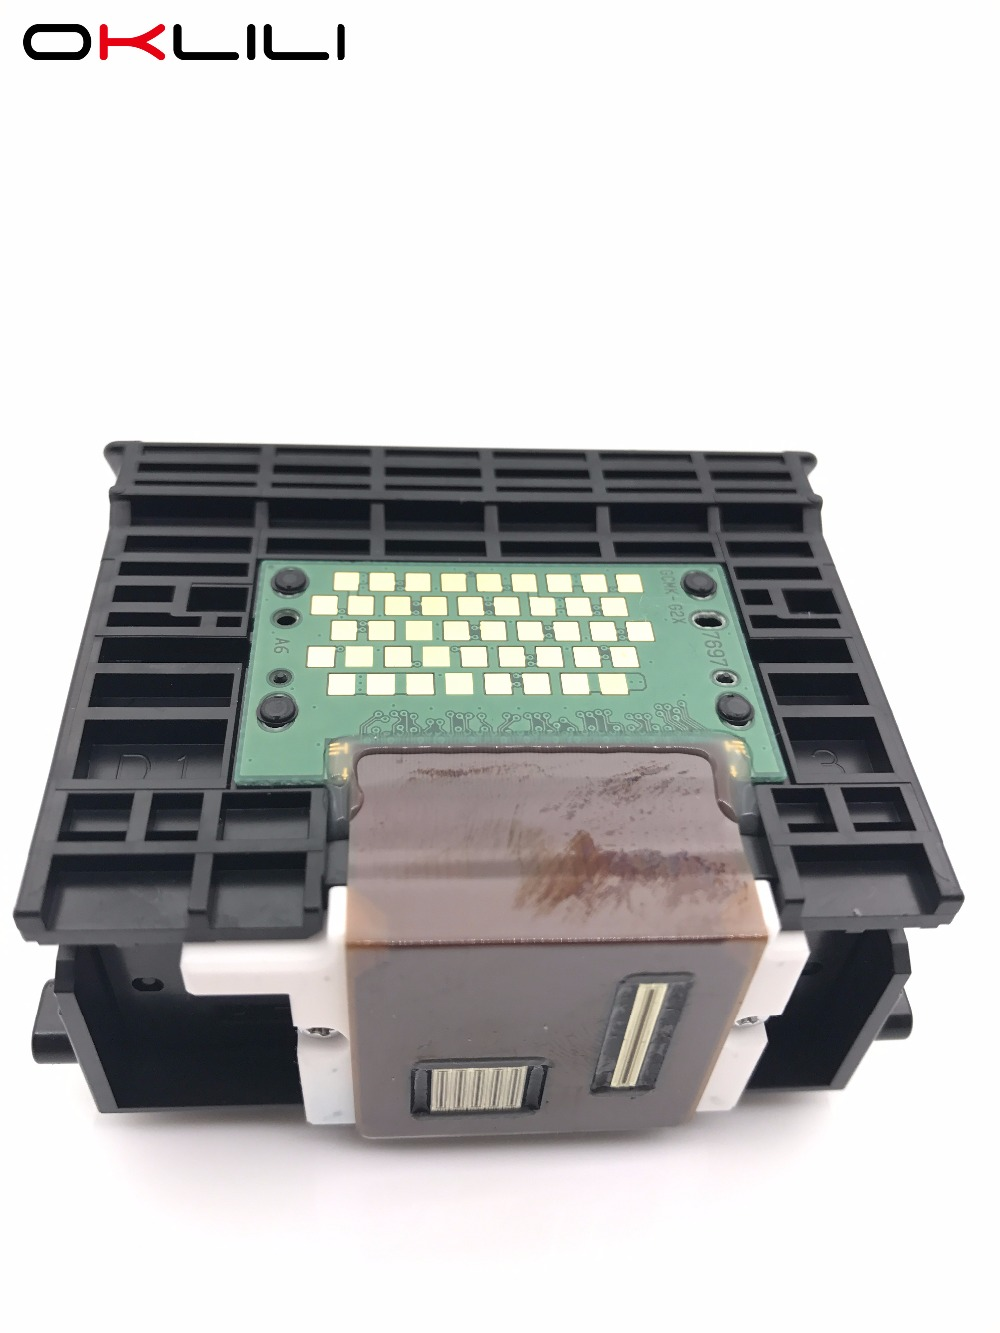 OKLILI ORIGINAL QY6-0070 QY6-0070-000 Printhead Print Head Printer Head for Canon MP510 MP520 MX700 iP3300 iP3500 turbo cartridge chra rhf5 vj26 vj33 wl84 va430013 turbocharger for mazda b2500 bravo for ford ranger double cab j82y wl t 2 5l